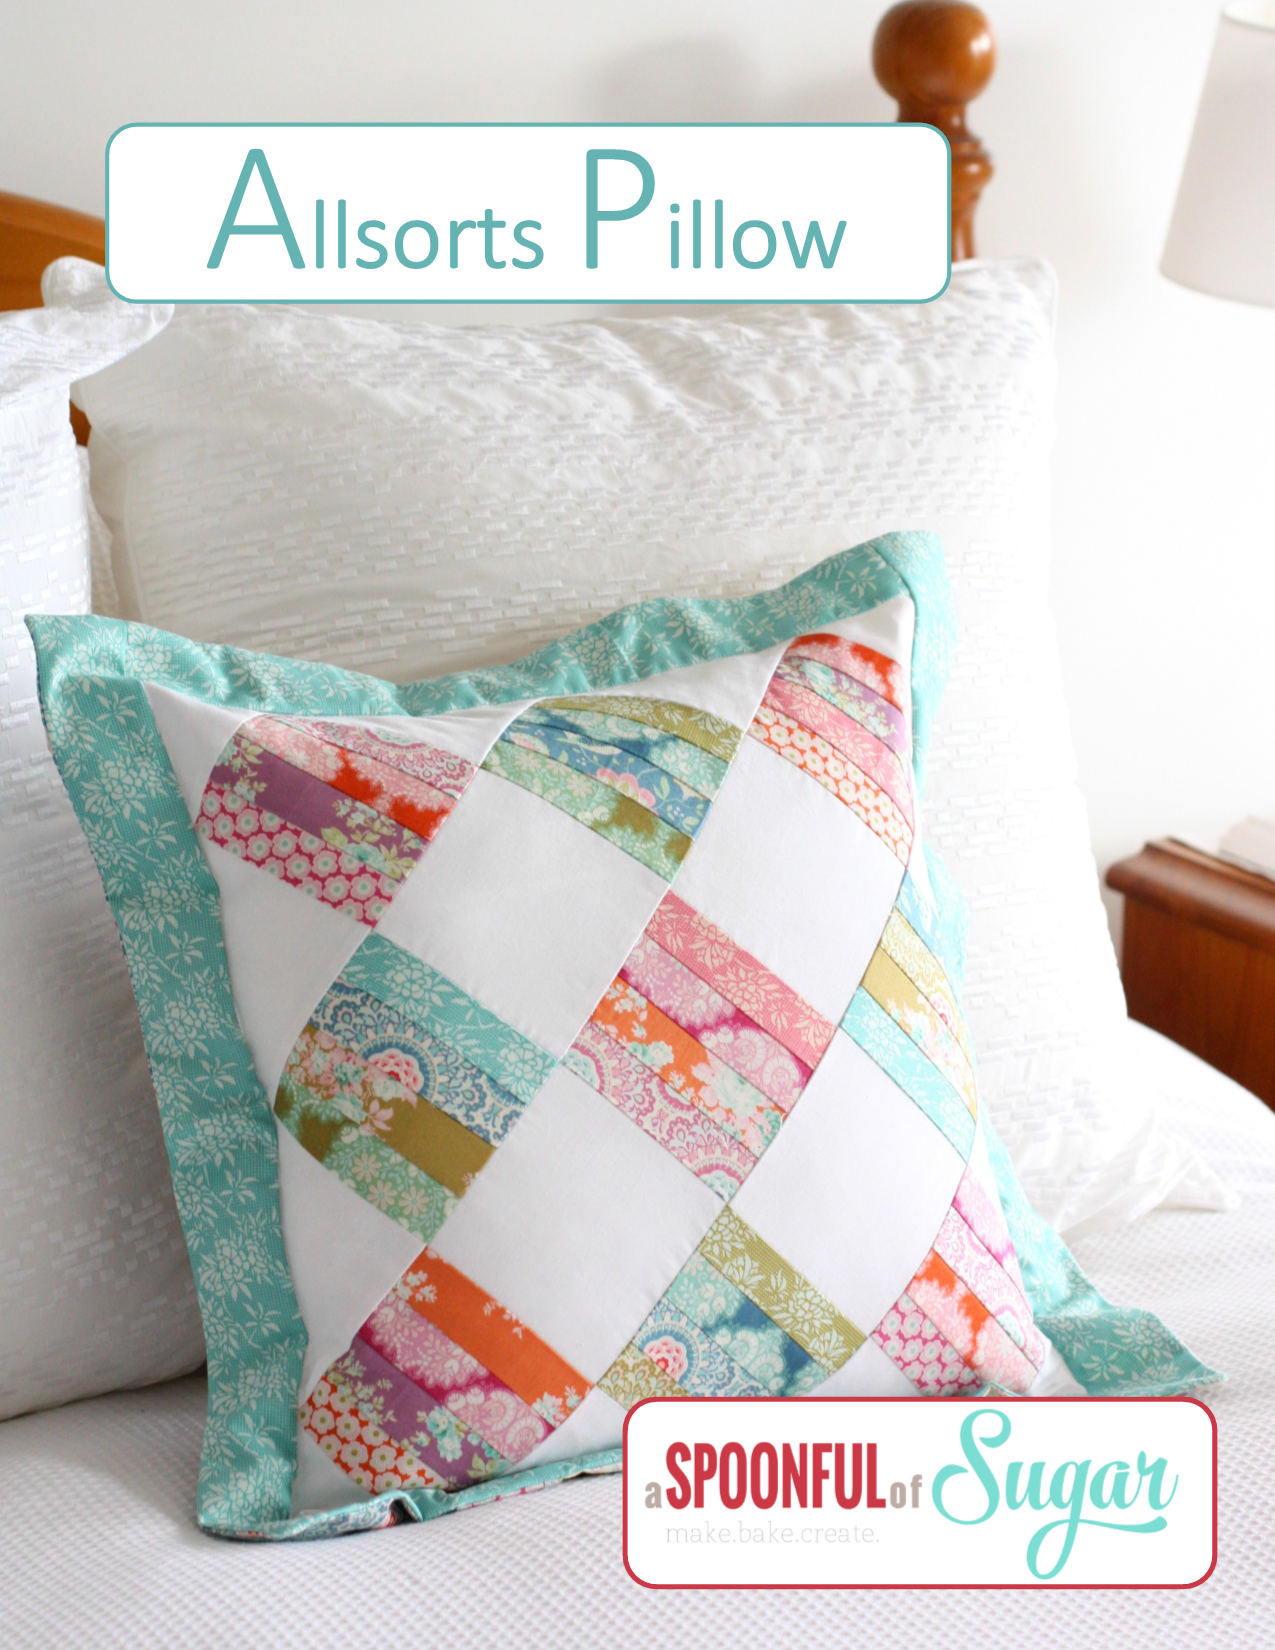 Allsorts Pillow Pattern by A Spoonful of Sugar